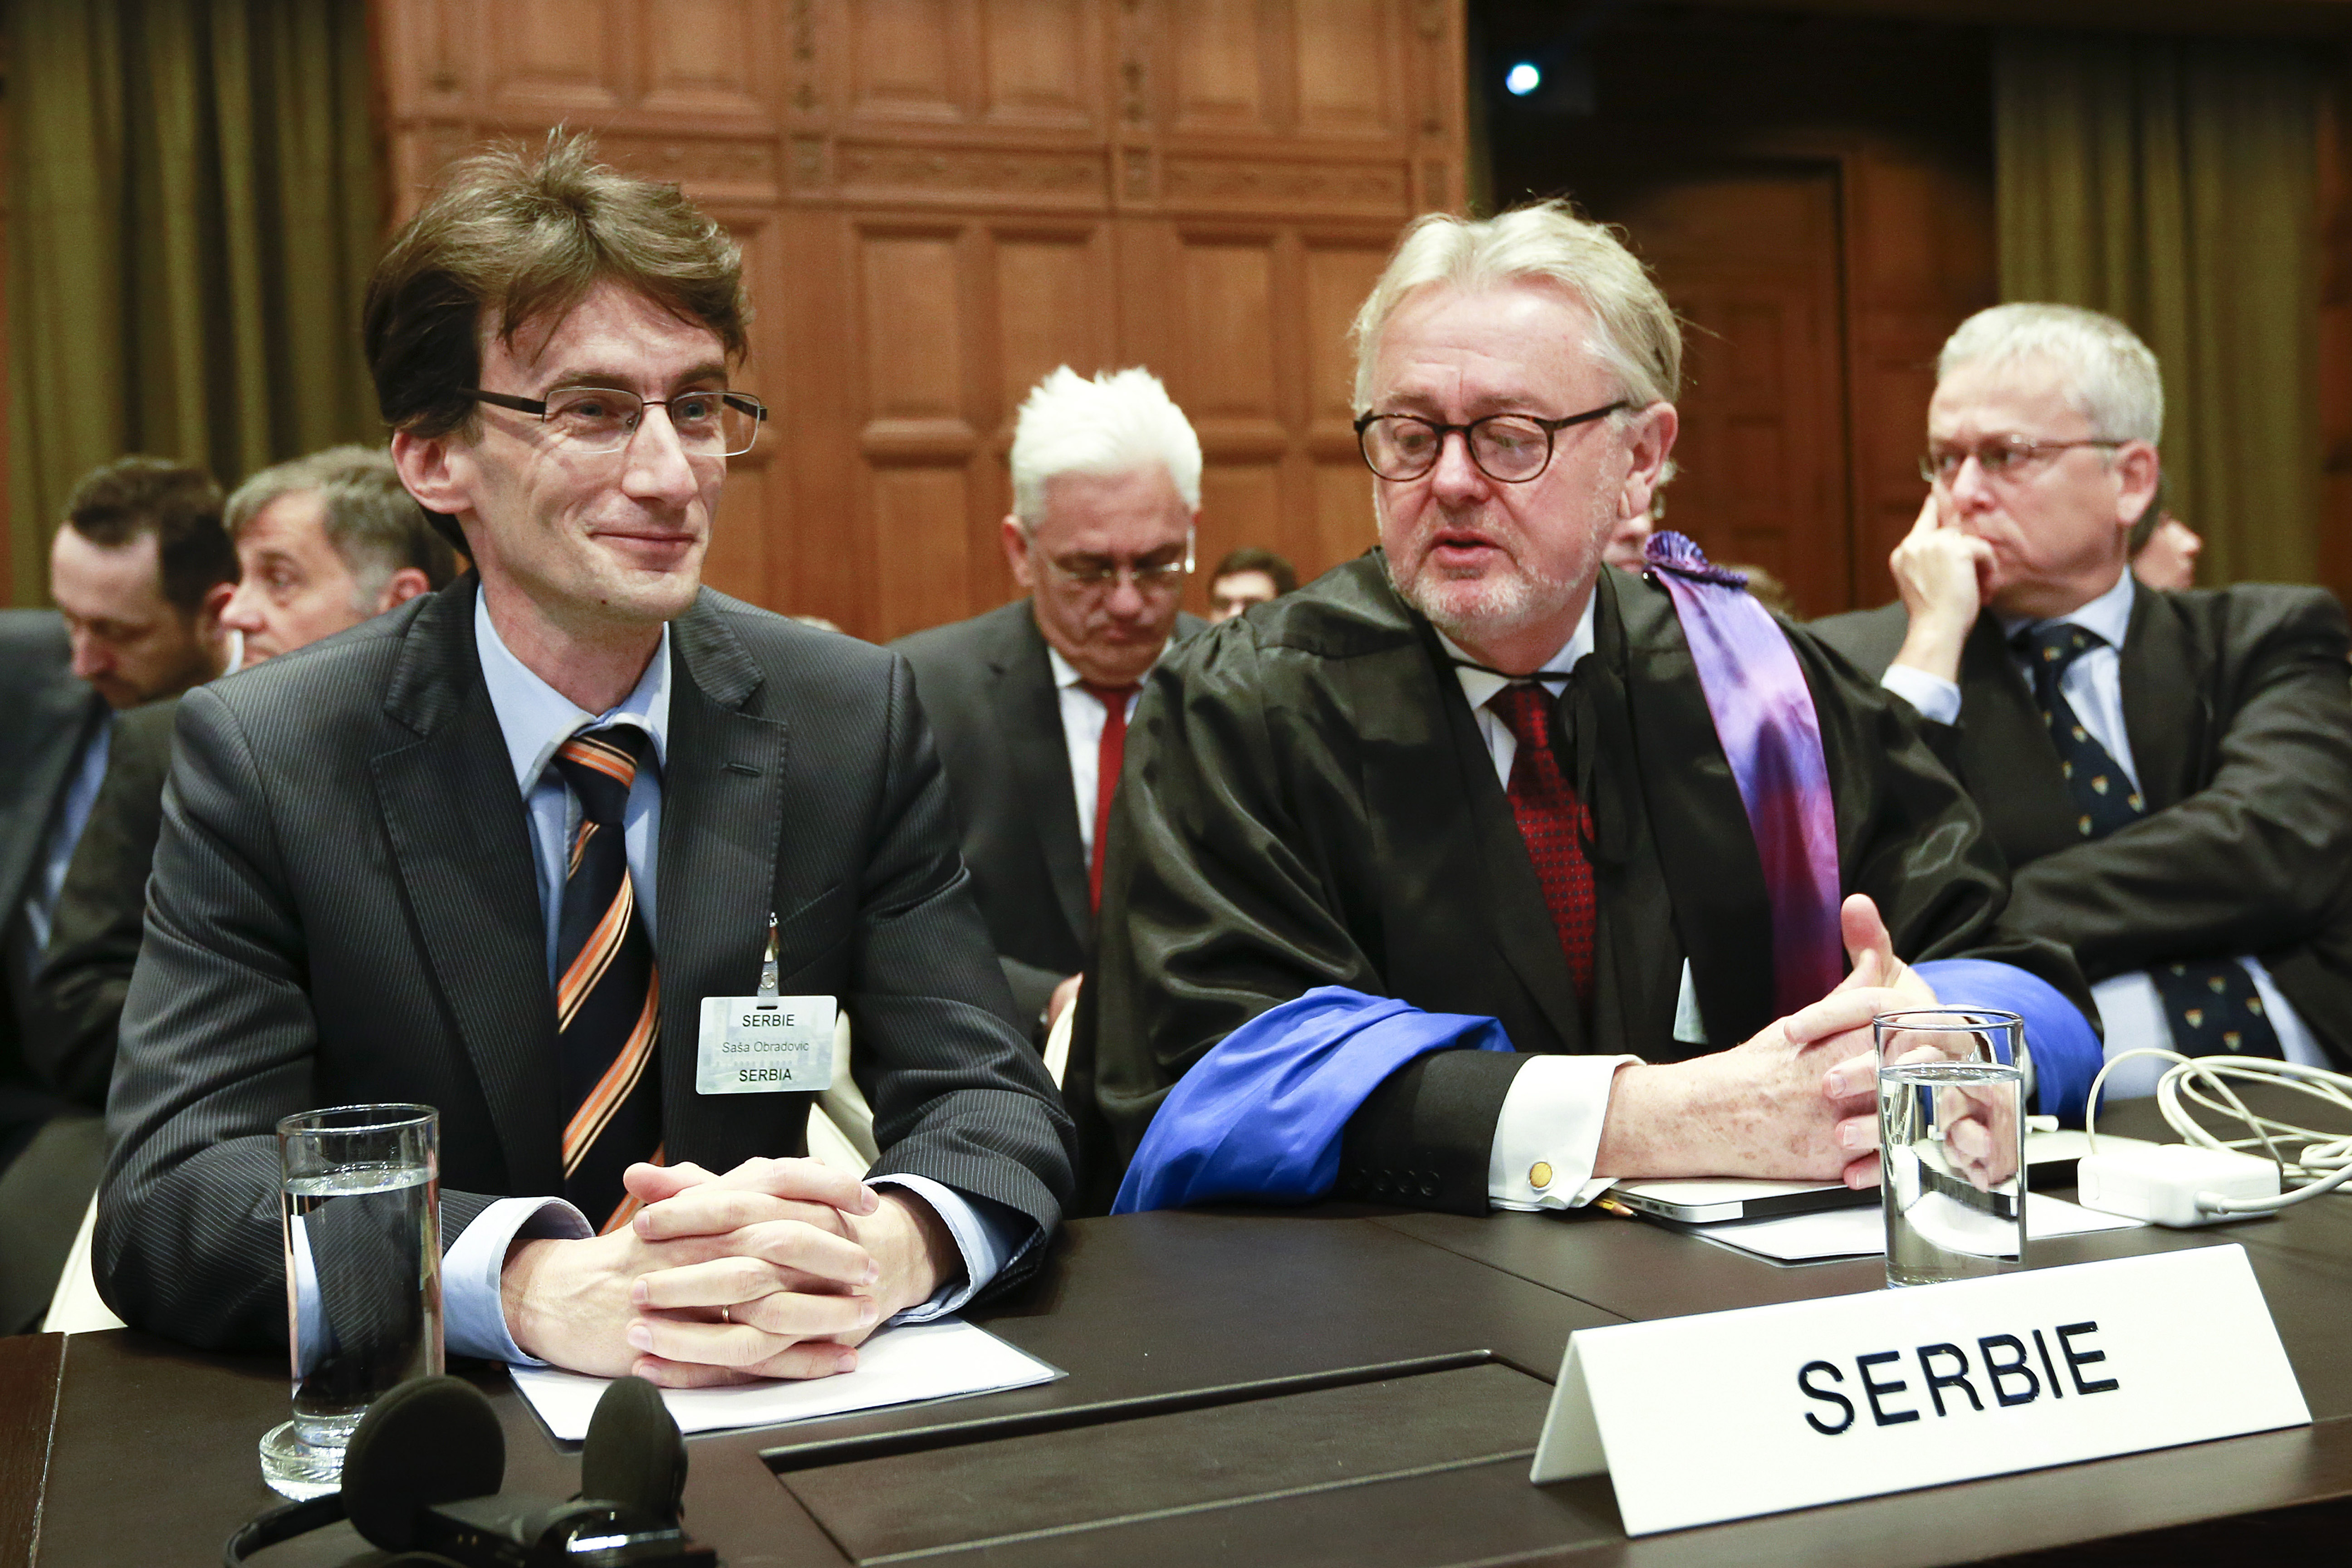 FILE - Members of the Serbian delegation, First Counsellor Sasa Obradovic, left, William Schabas, center and Andreas Zimmermann, right, await the start of public hearings at the International Court of Justice (ICJ) in The Hague,  Netherlands, March 3...